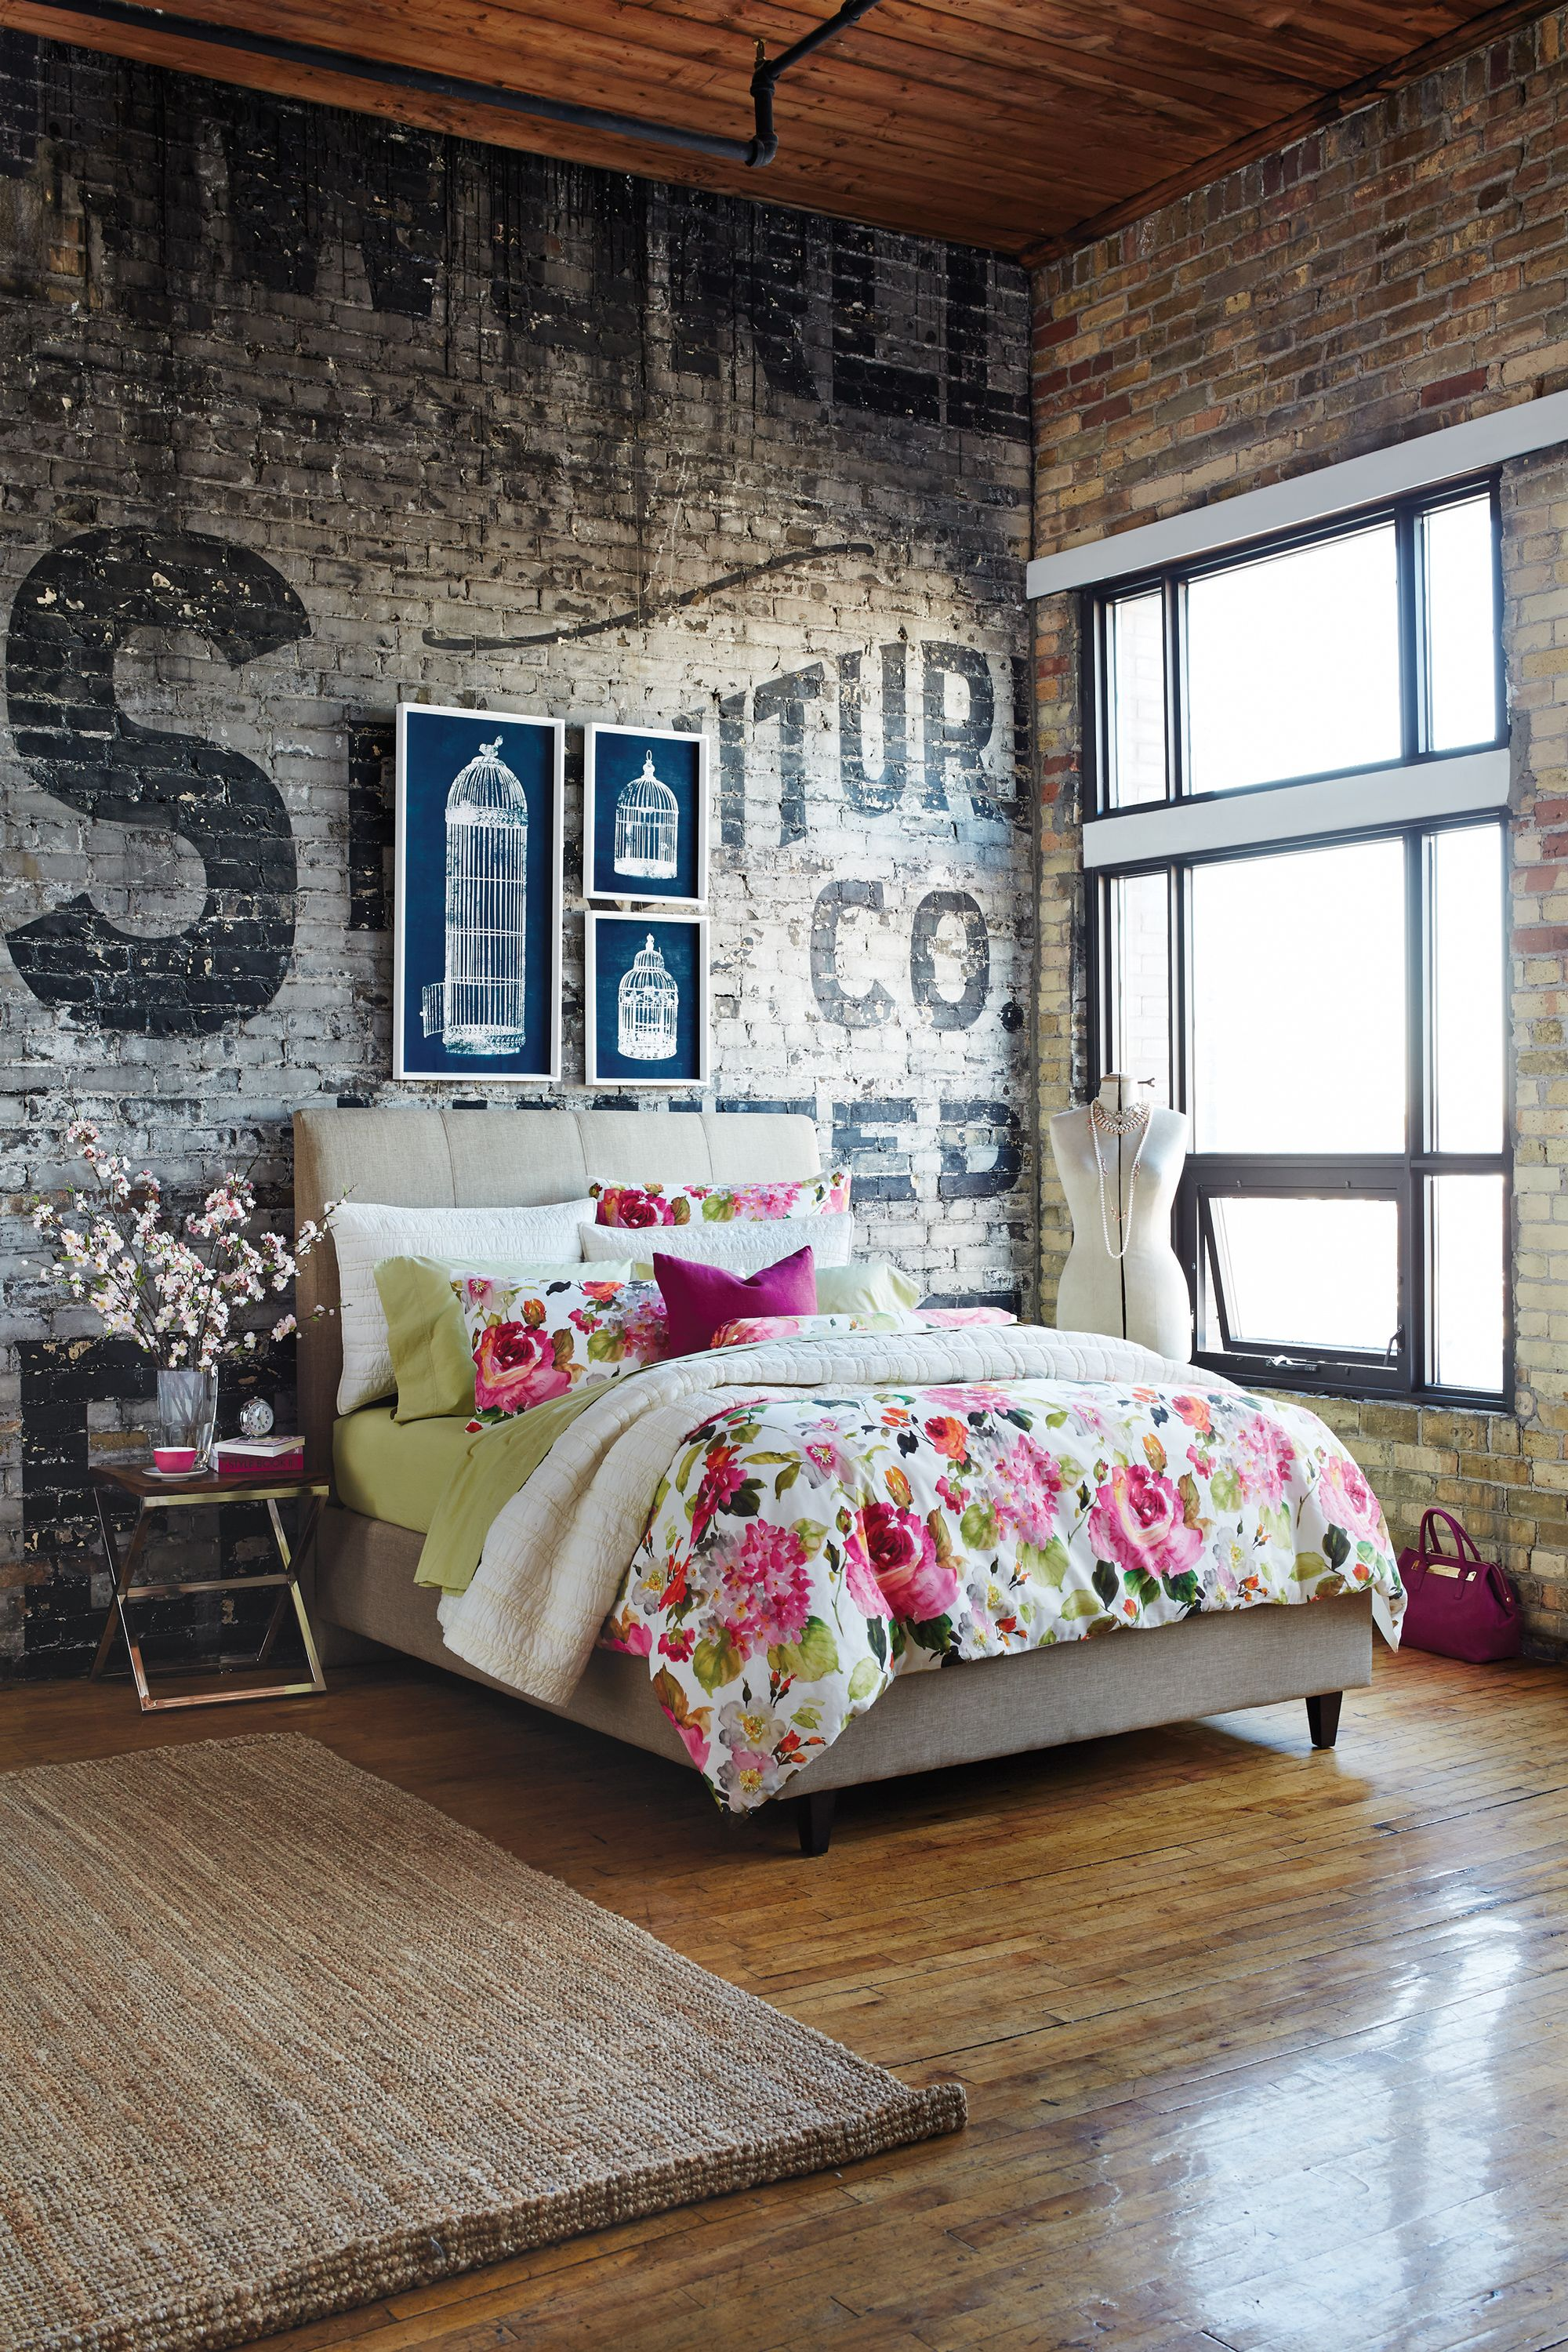 20 Breathtaking Rooms With Exposed Brick Home Bedroom Home Images, Photos, Reviews